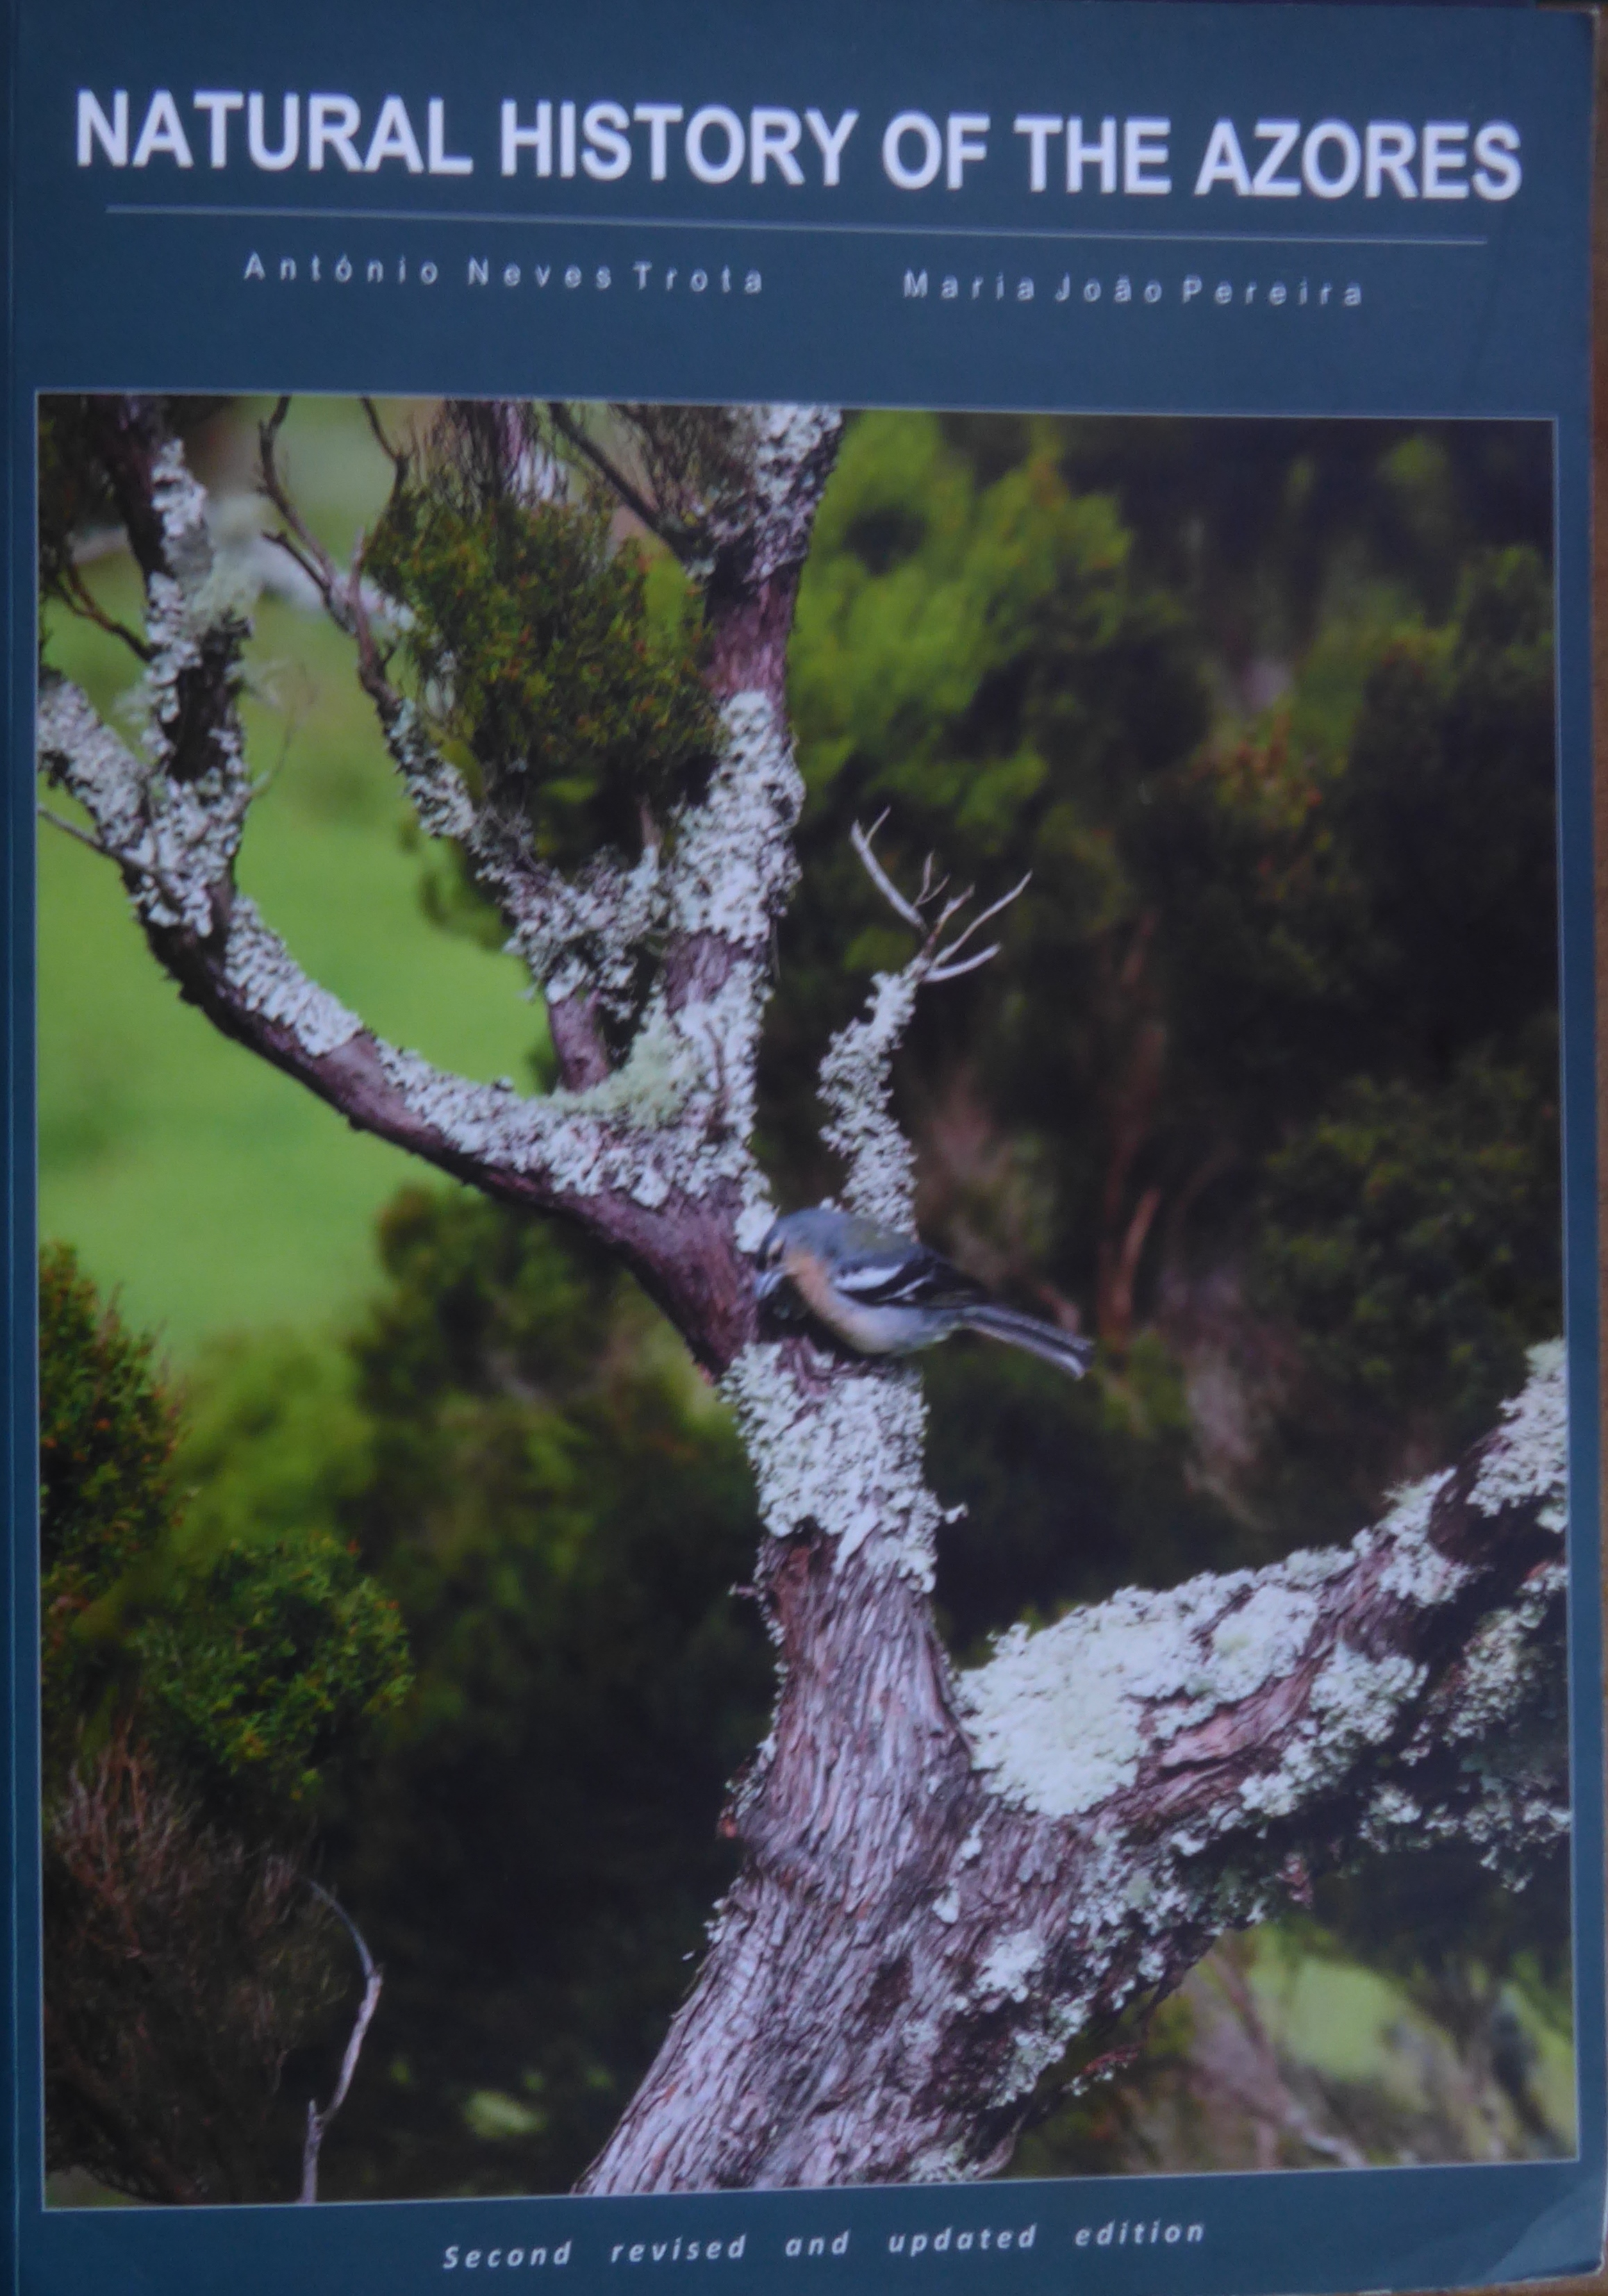 Natural history of the Azores 2018 bookcover scan